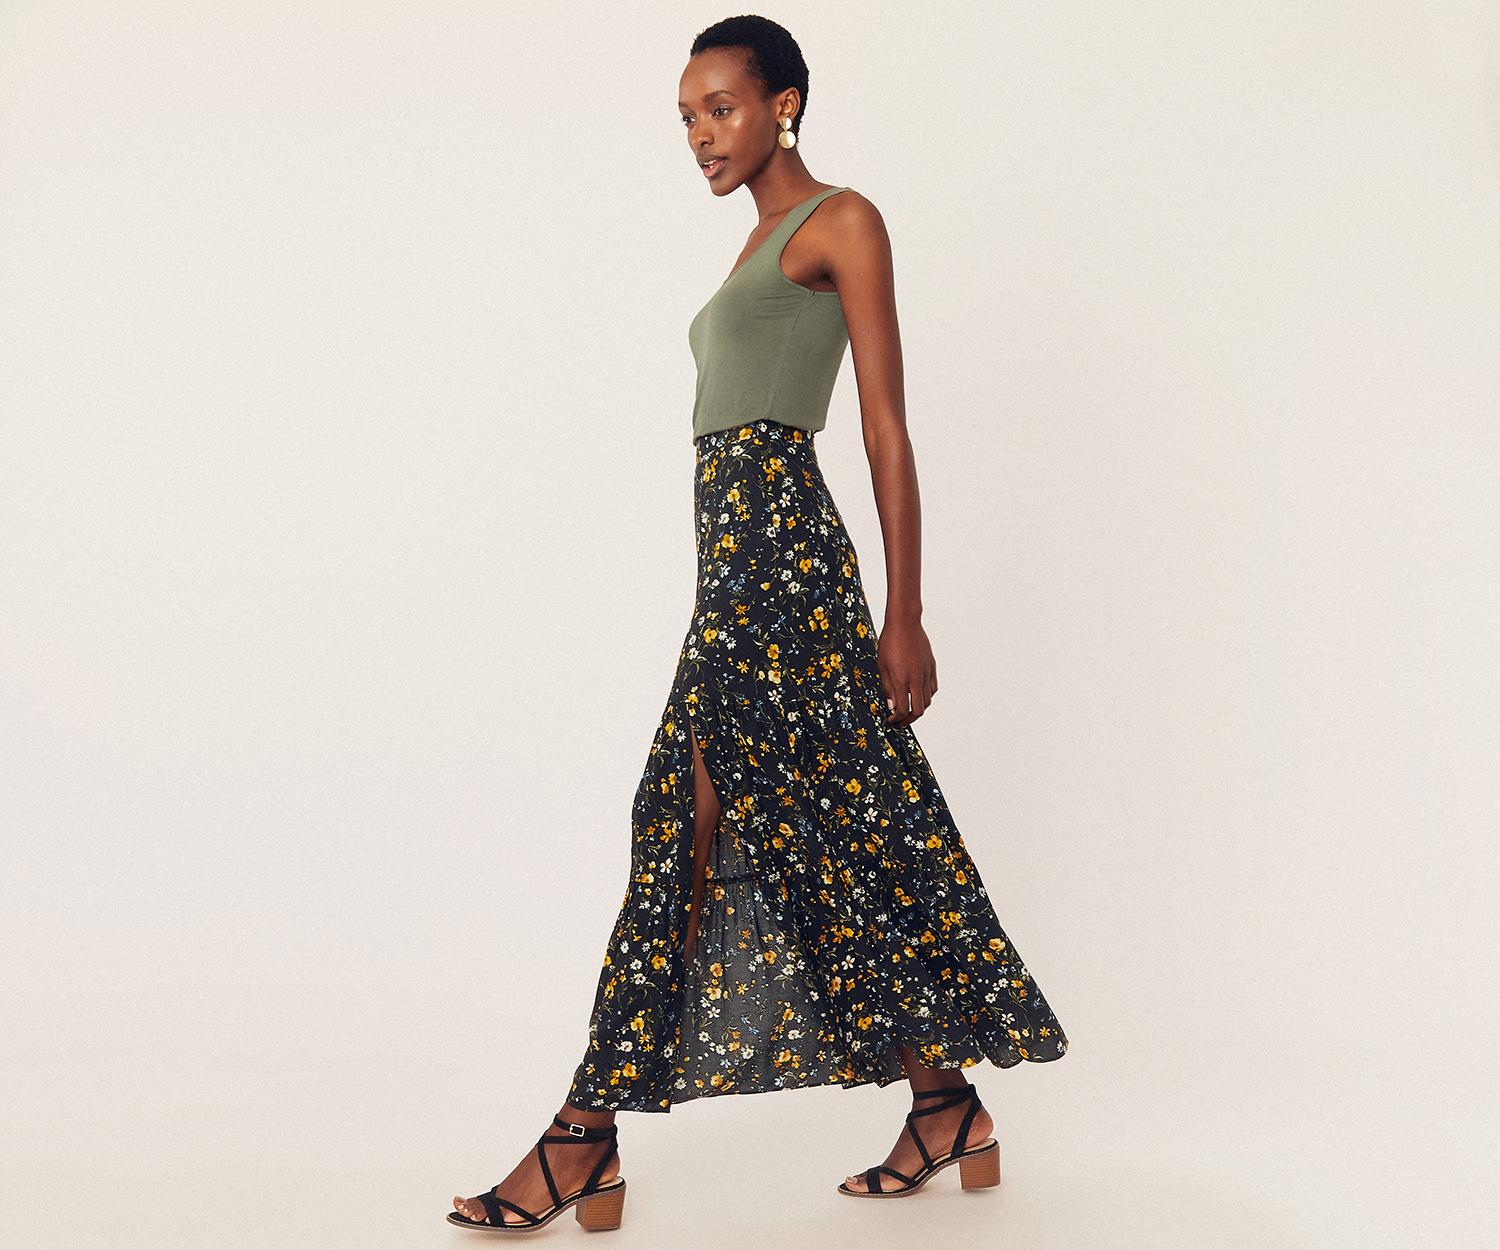 65ef4e30f7d2 Oasis Ditsy Tiered Maxi Skirt in Black - Lyst